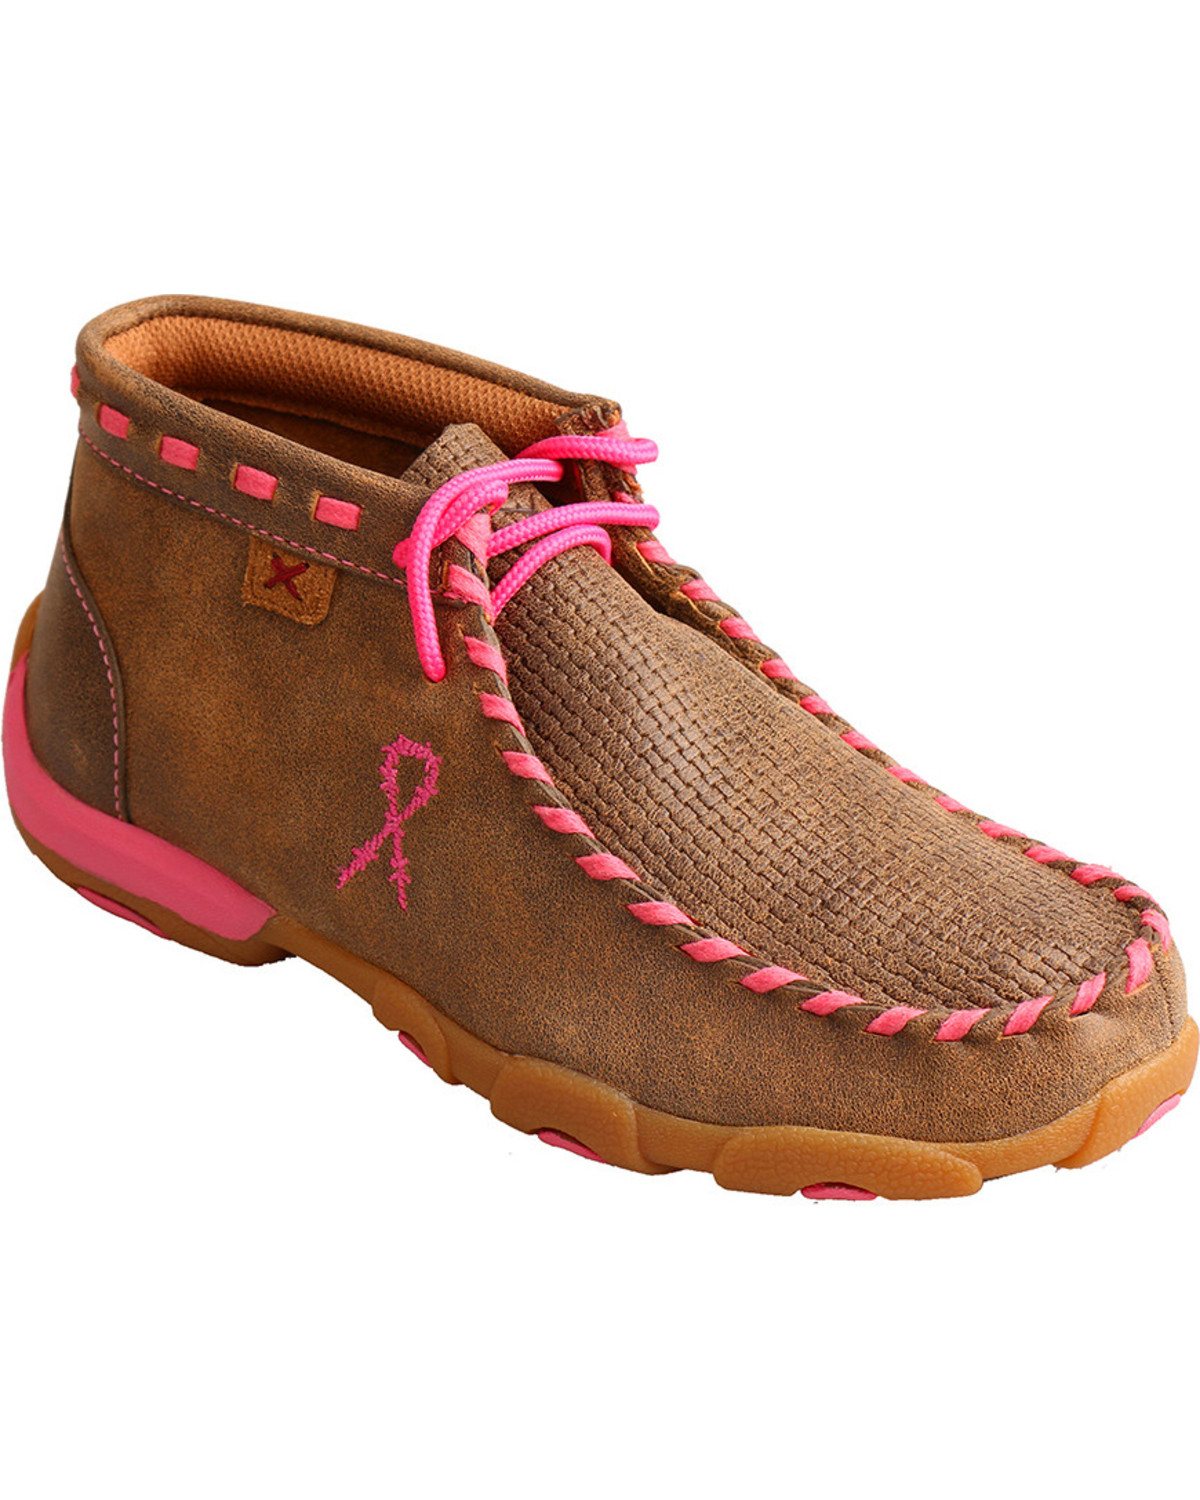 Twisted X Boots Youth Breast Cancer